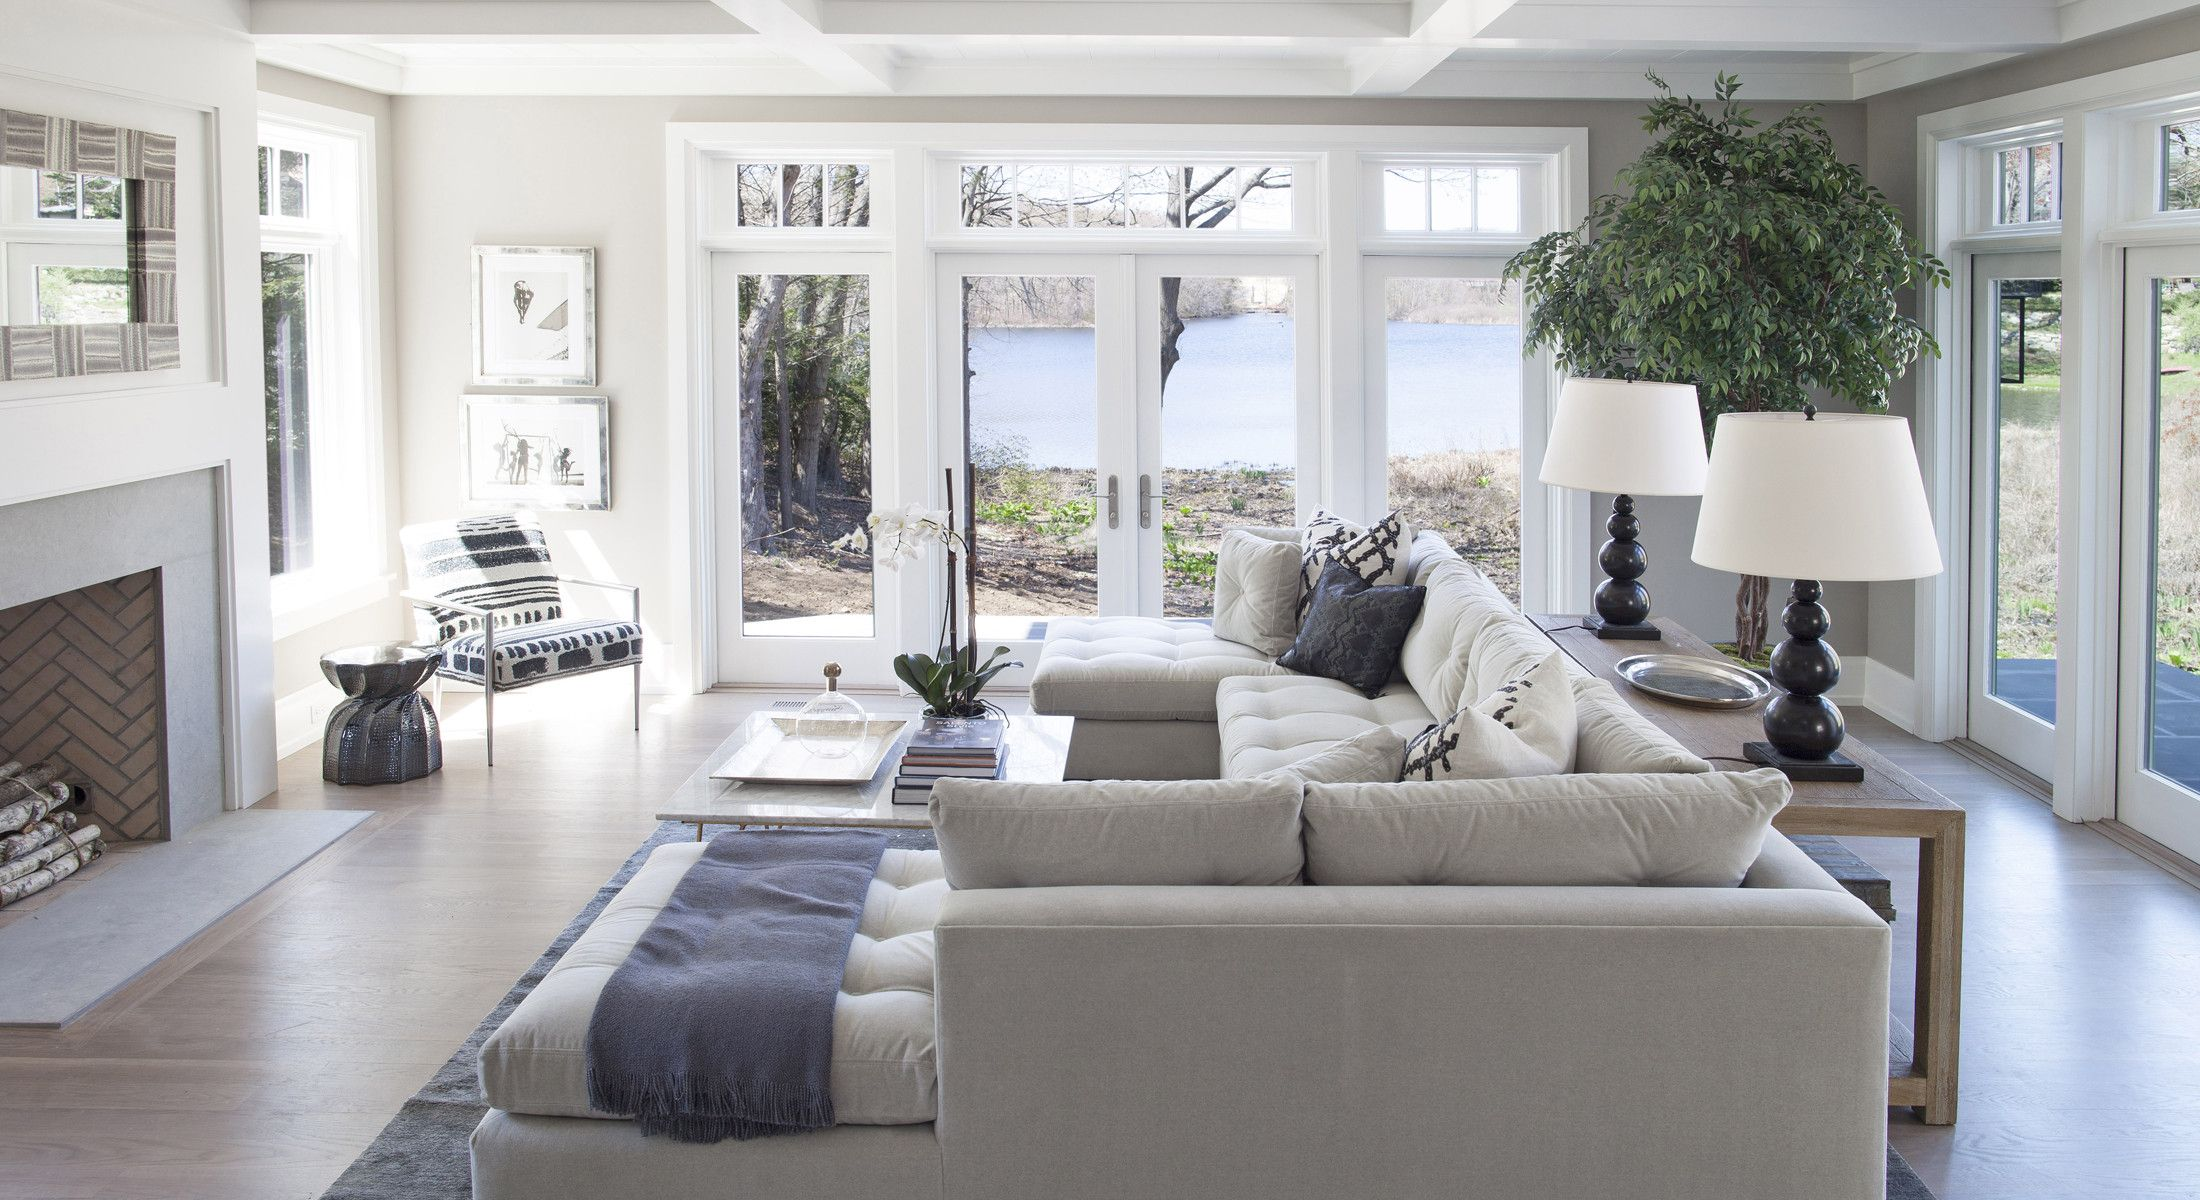 Family Room Seating And Large Painless Windows Set On